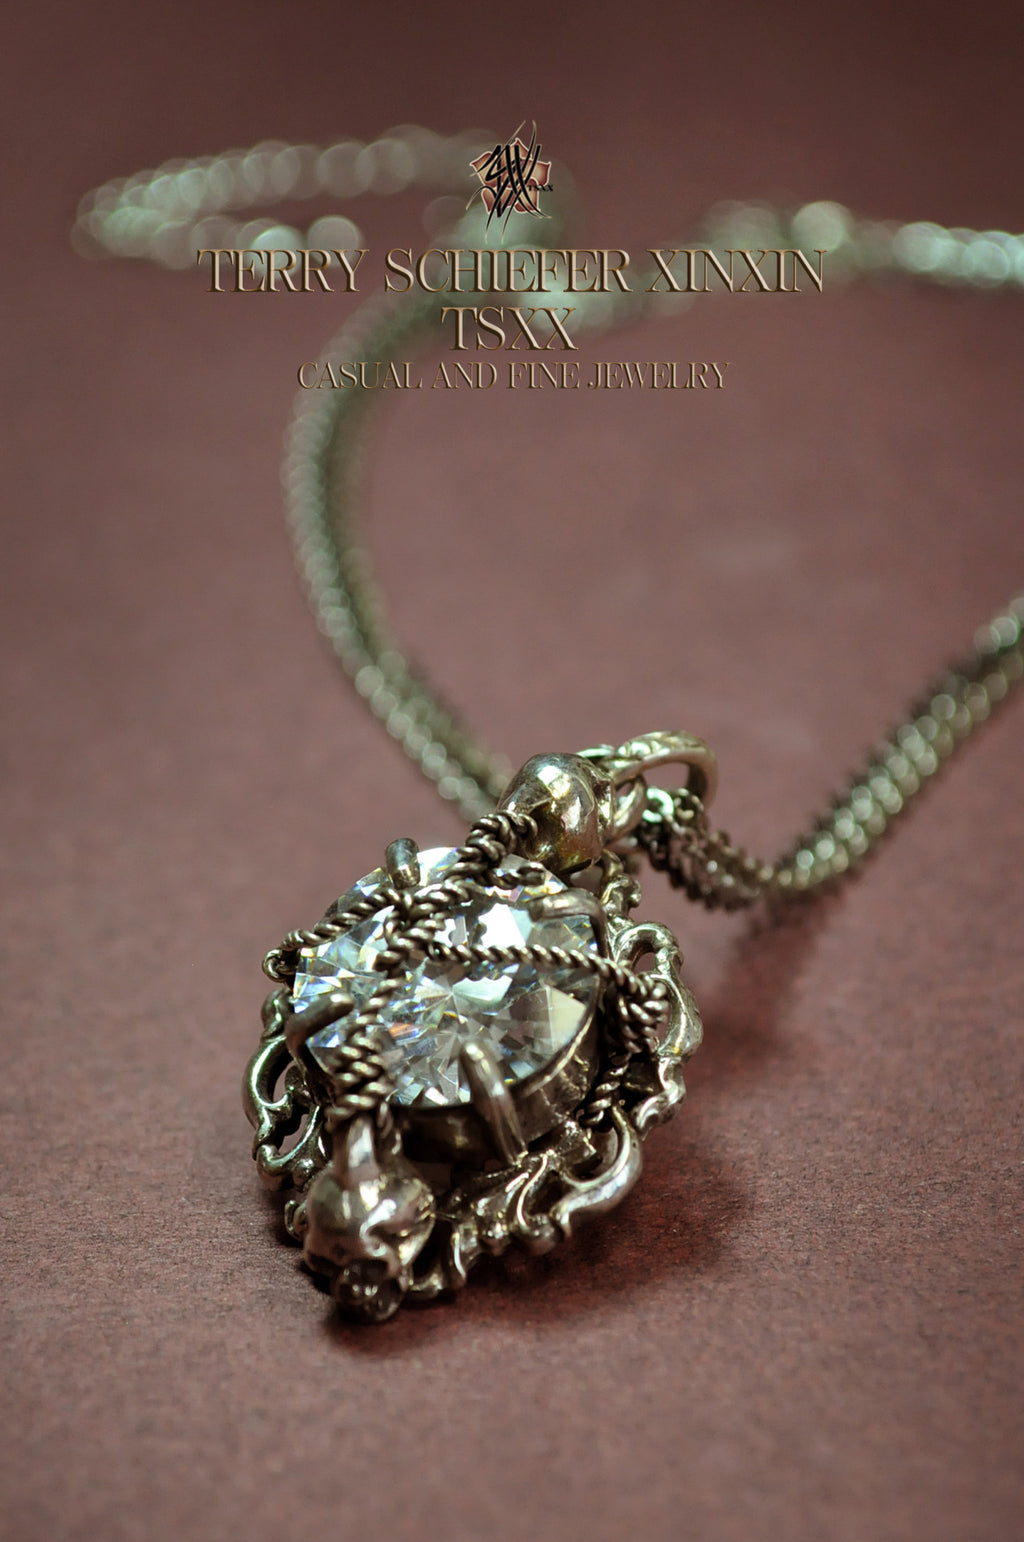 Memento Mori Necklace | Terry Schiefer